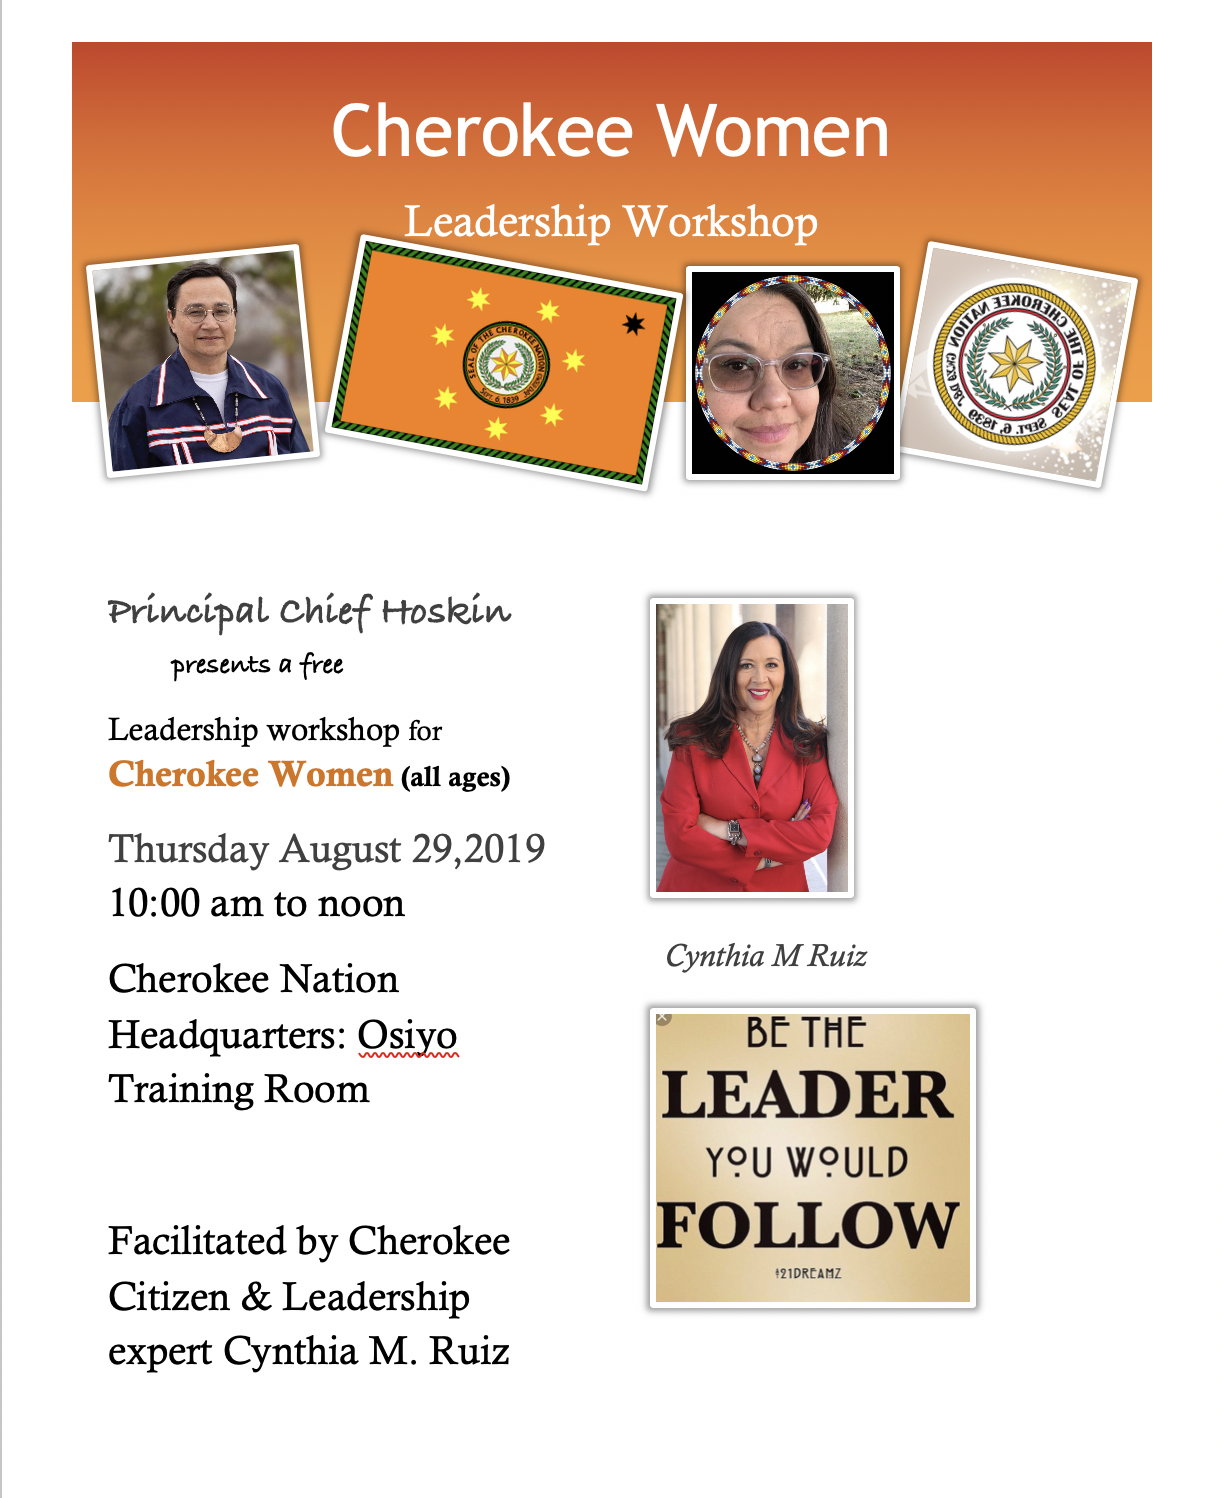 Cherokee Women Leadership Workshop